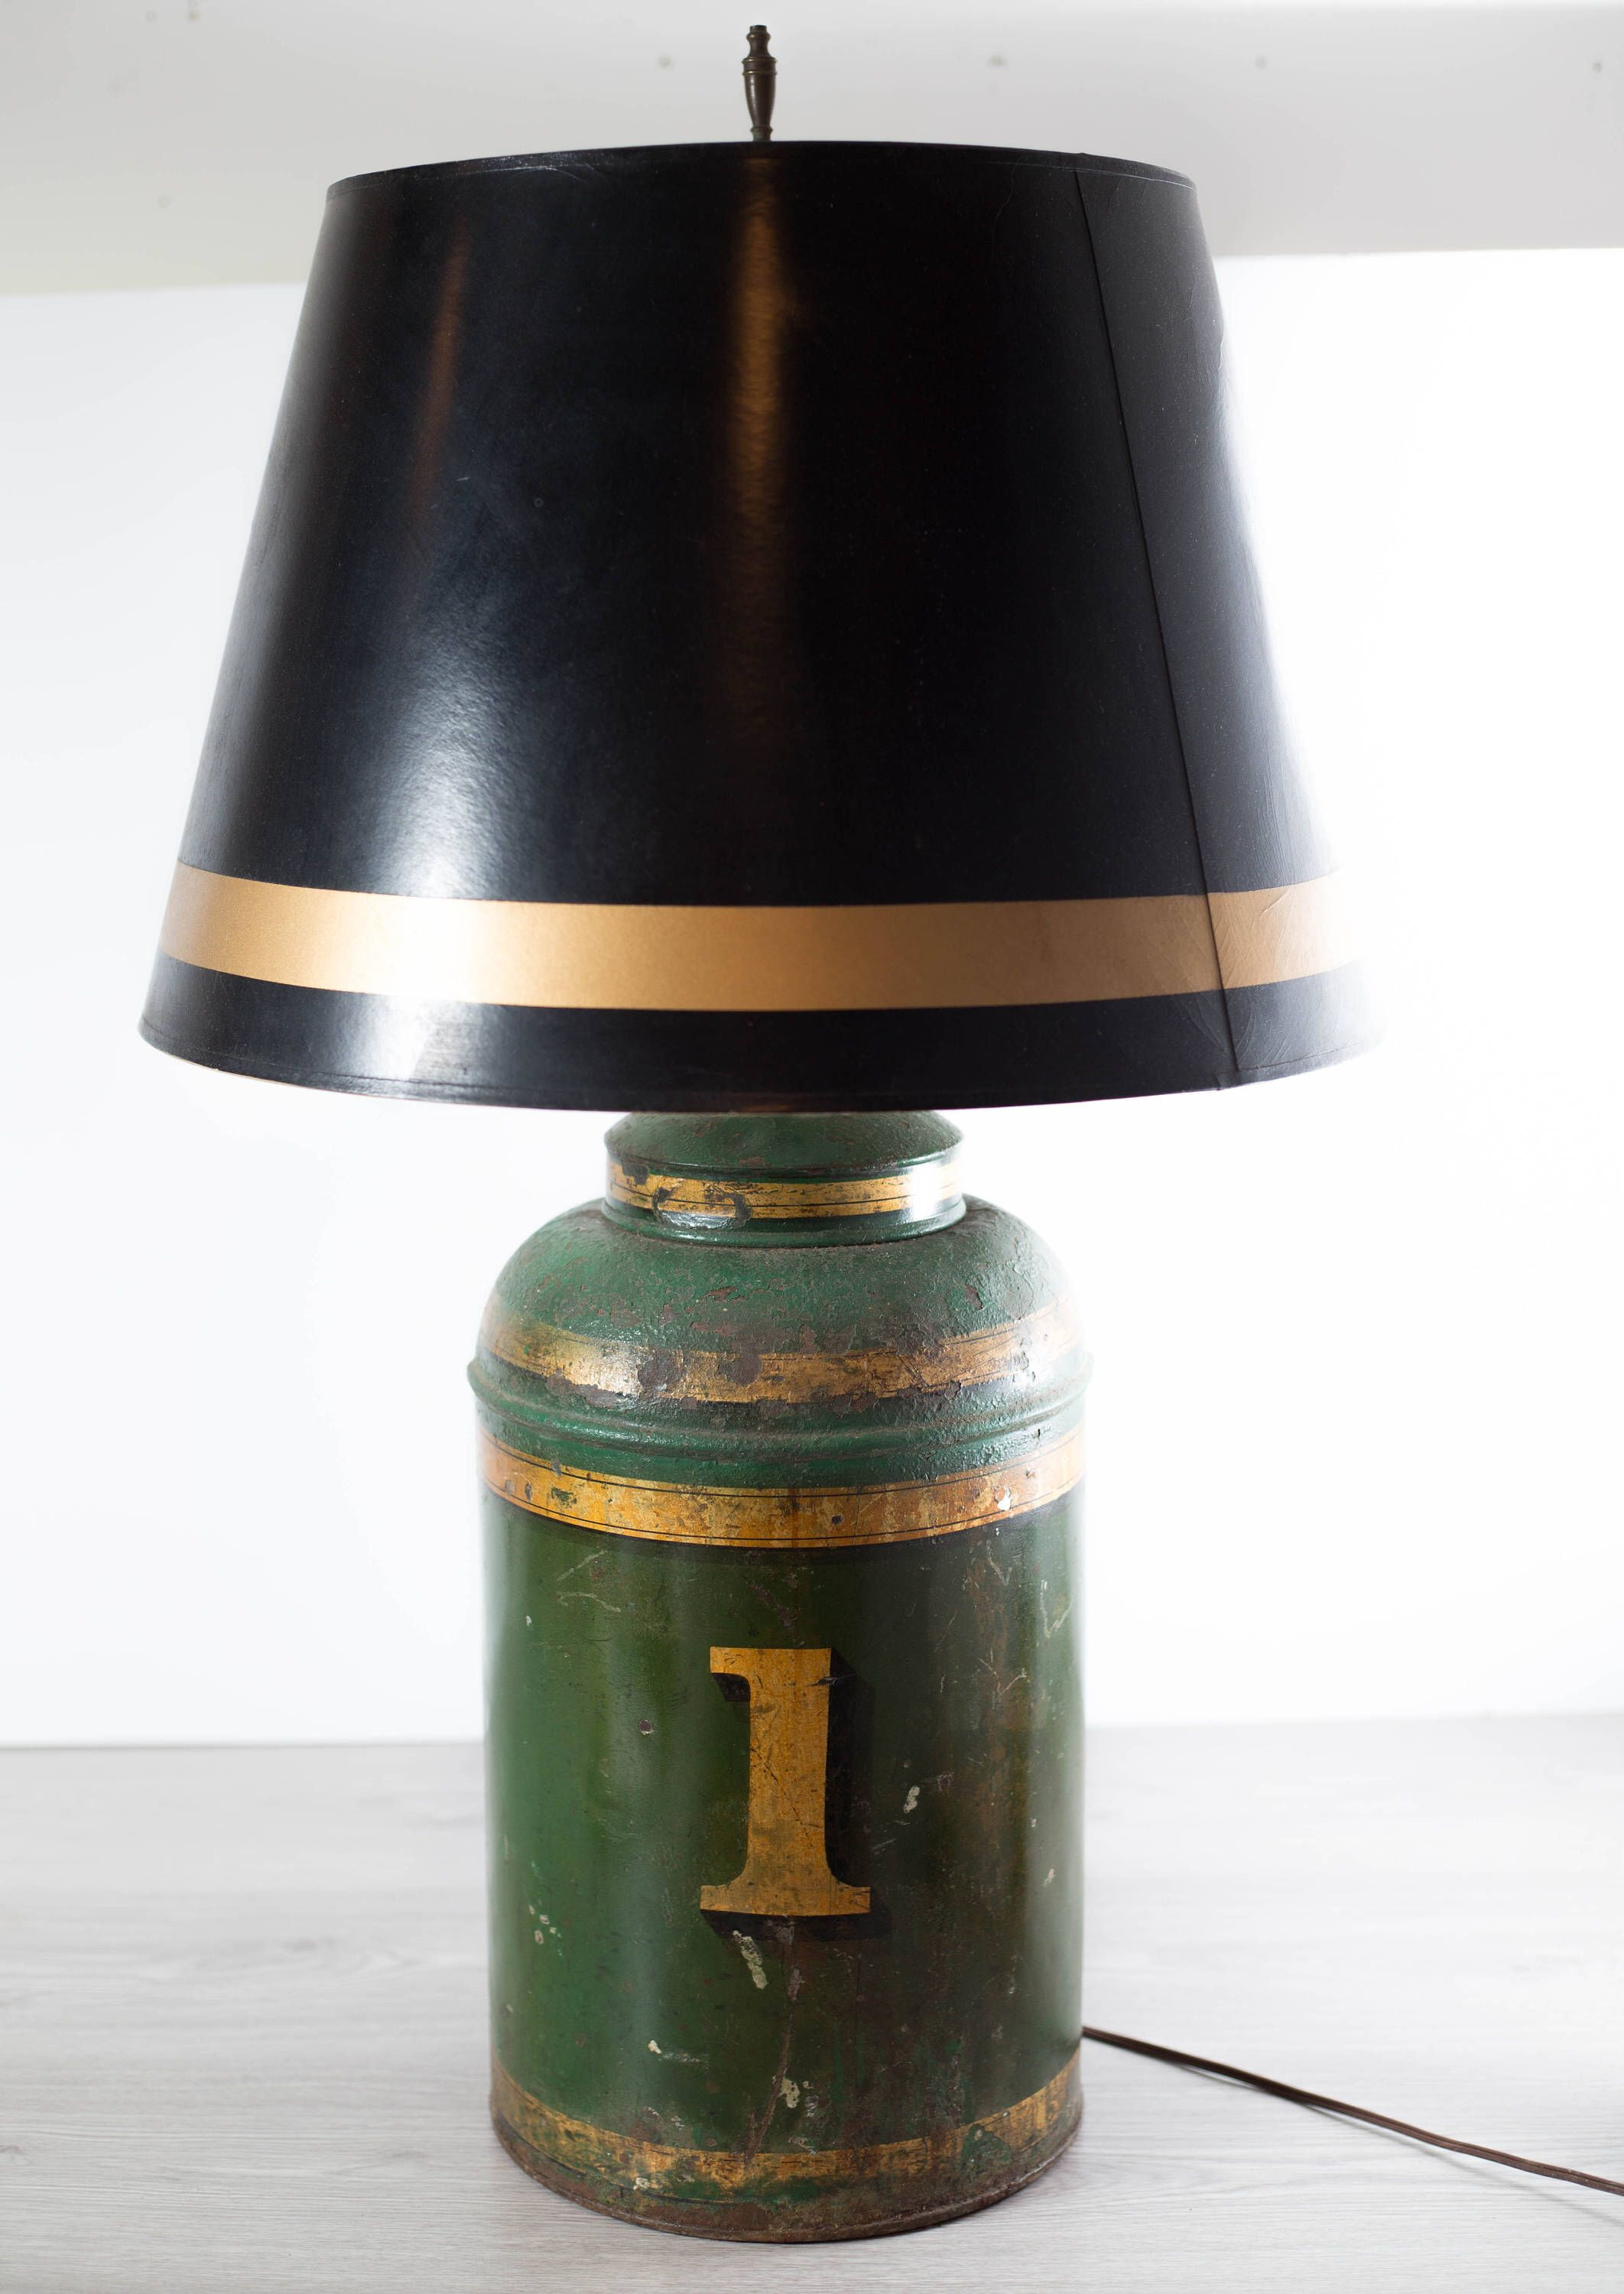 Vintage Rustic Lamp Large Metal Number One Gold Banded Green Milk Jug Lamp With Black Shade Cabin Cottage Outdoor Style Table Lamp Rustic Lamps Gold Lamp Shades Vintage Home Decor